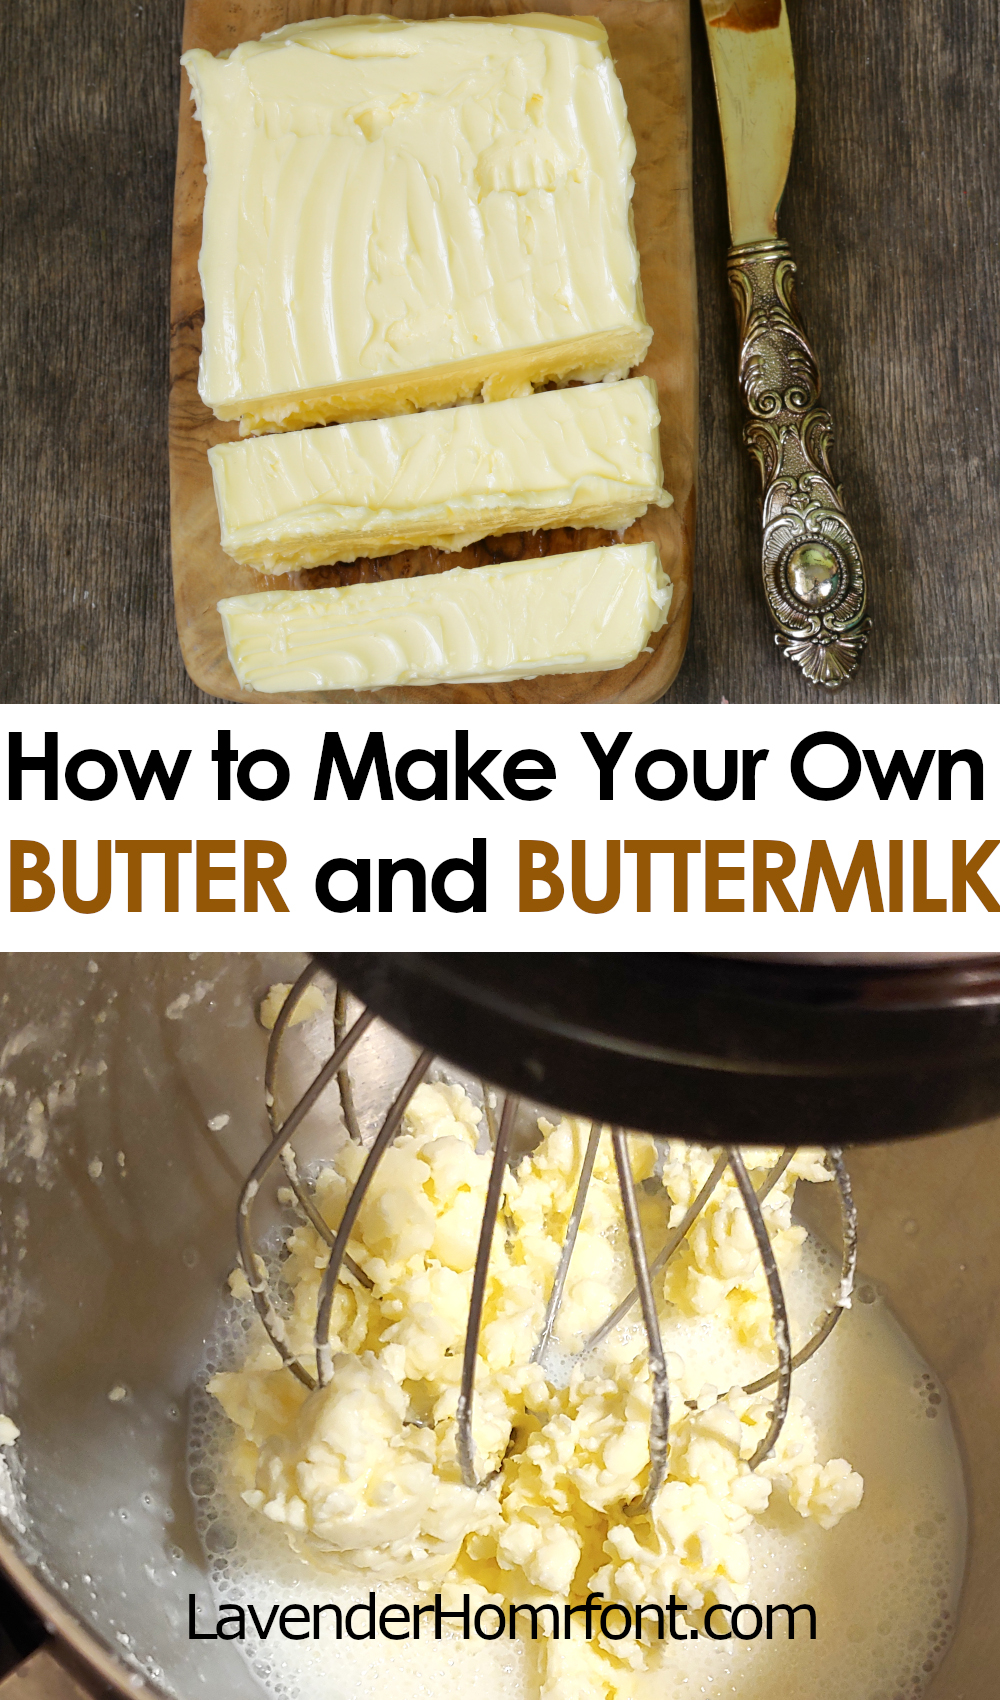 making butter and buttermilk pinnable image with text overlay.